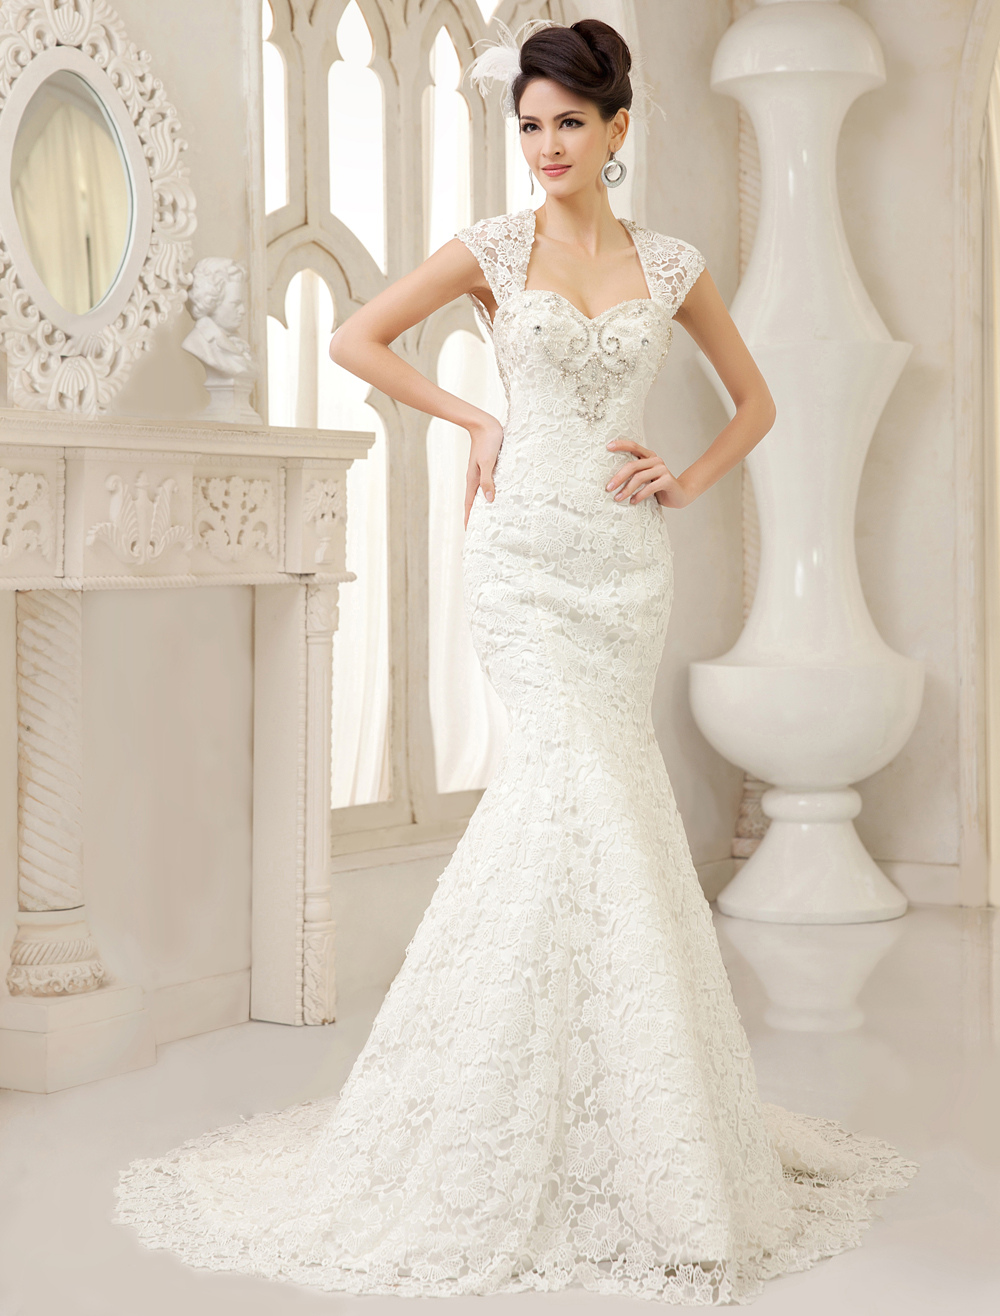 White Mermaid Queen Anne Neck Pearls Sweep Lace Bridal Wedding Gown  Milanoo